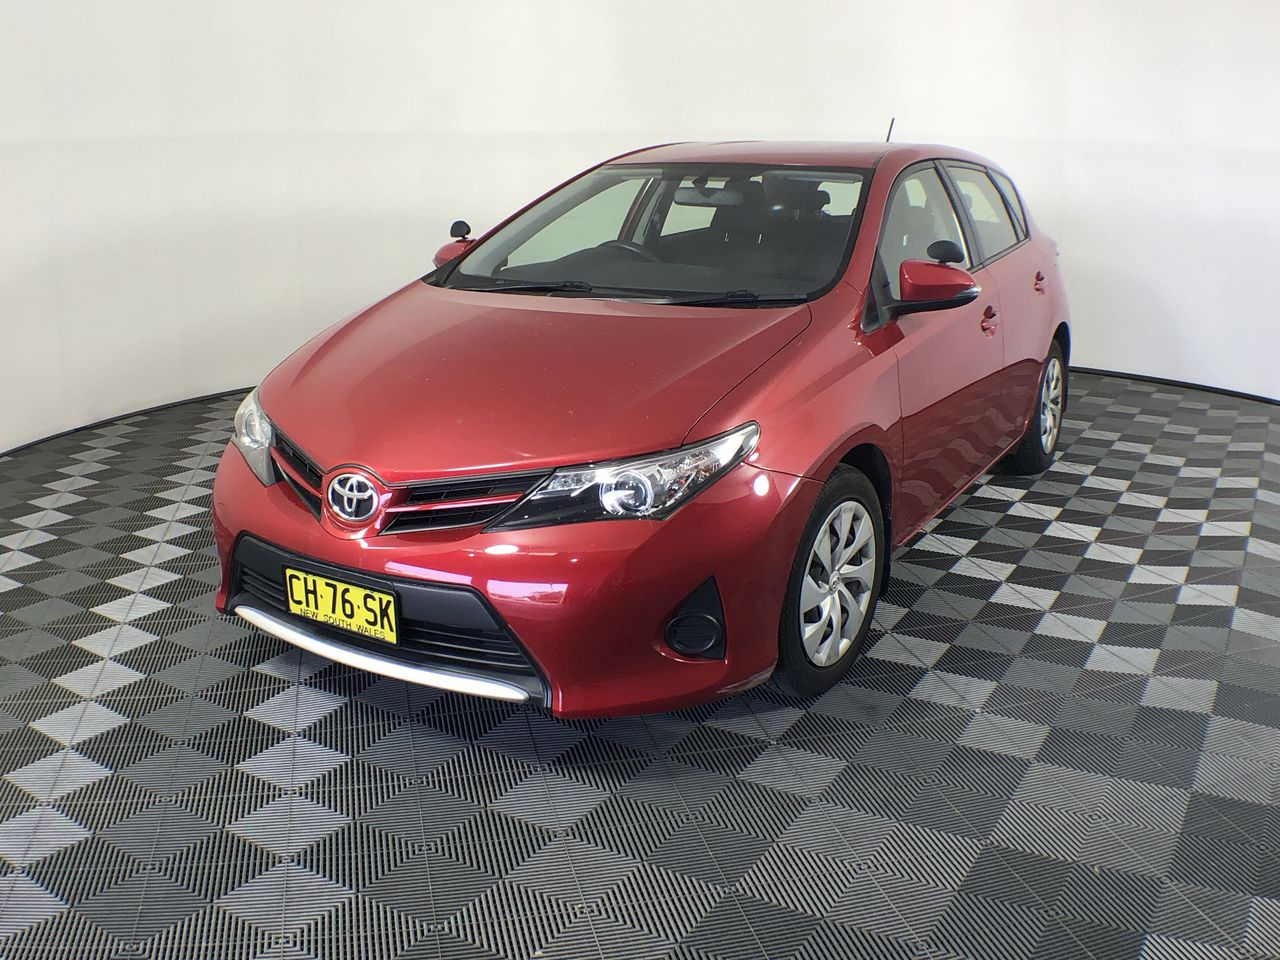 2014 Toyota Corolla Ascent ZRE182R Automatic Hatchback